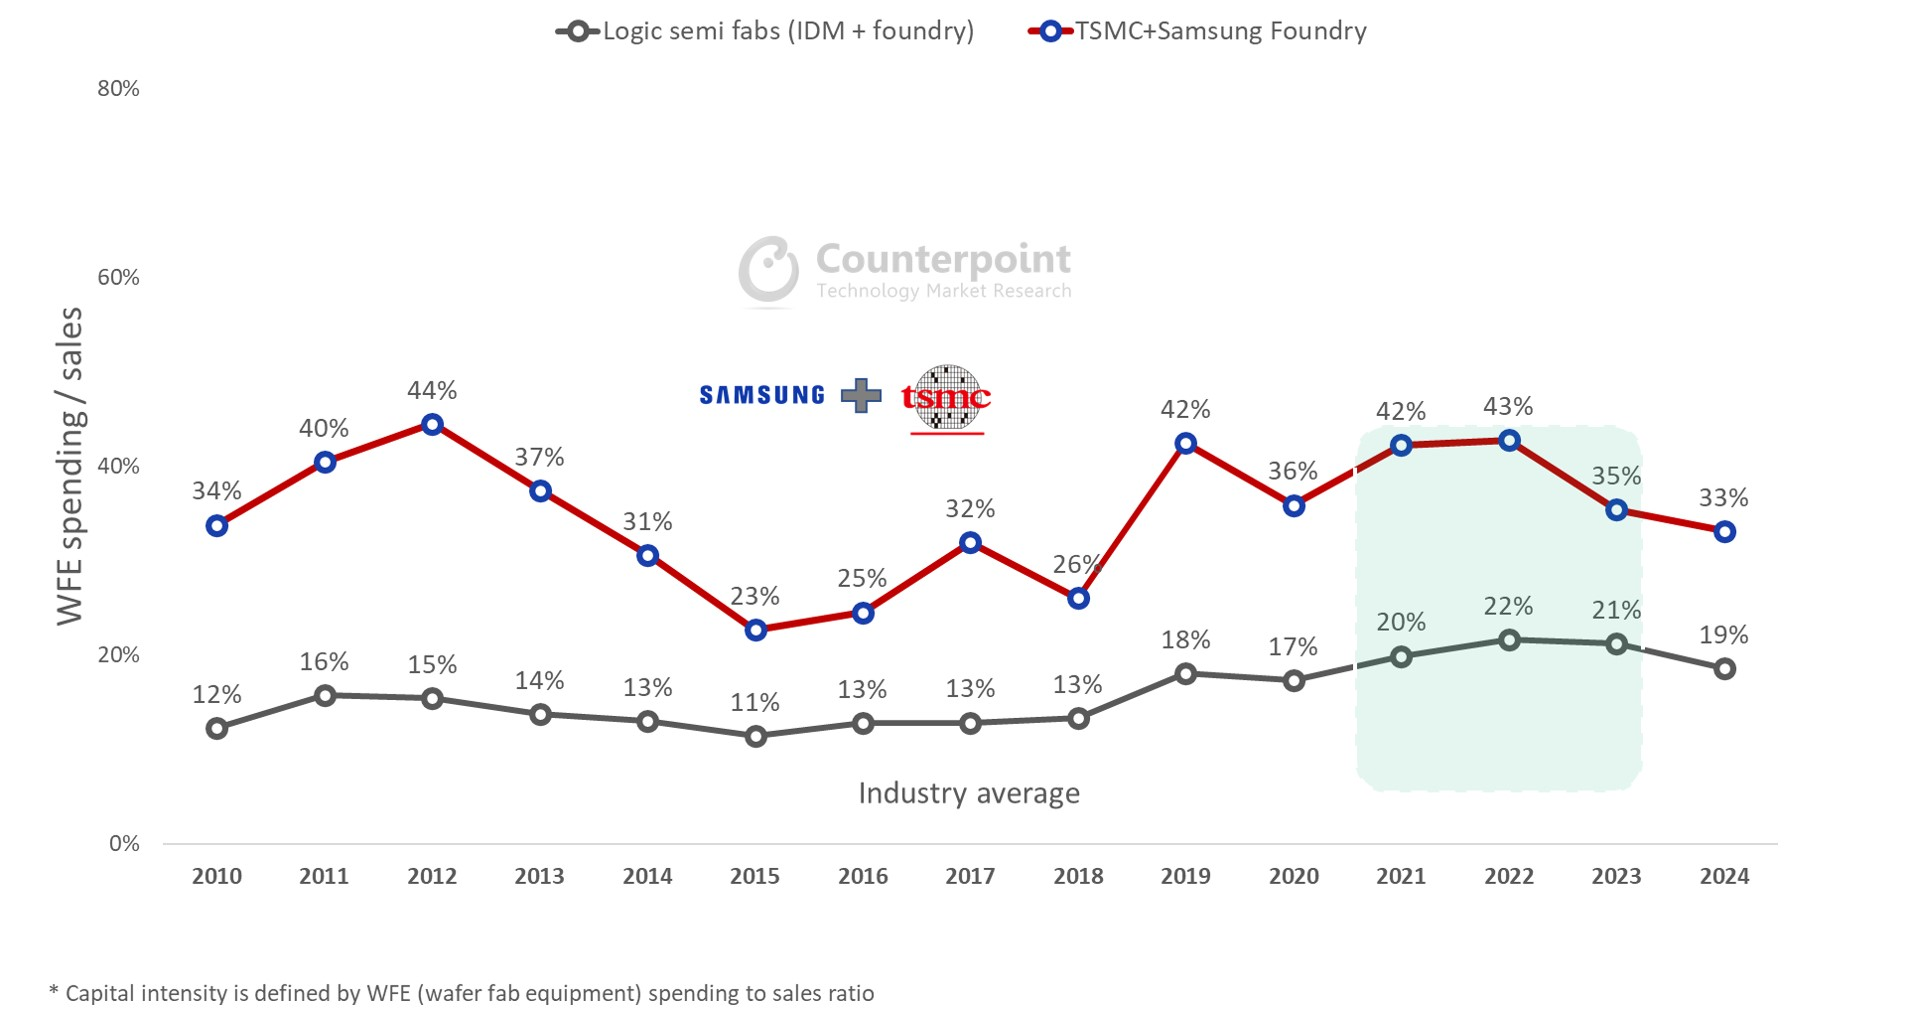 Counterpoint Research Global Logic Semiconductor Fabs Capital Intensity Trend